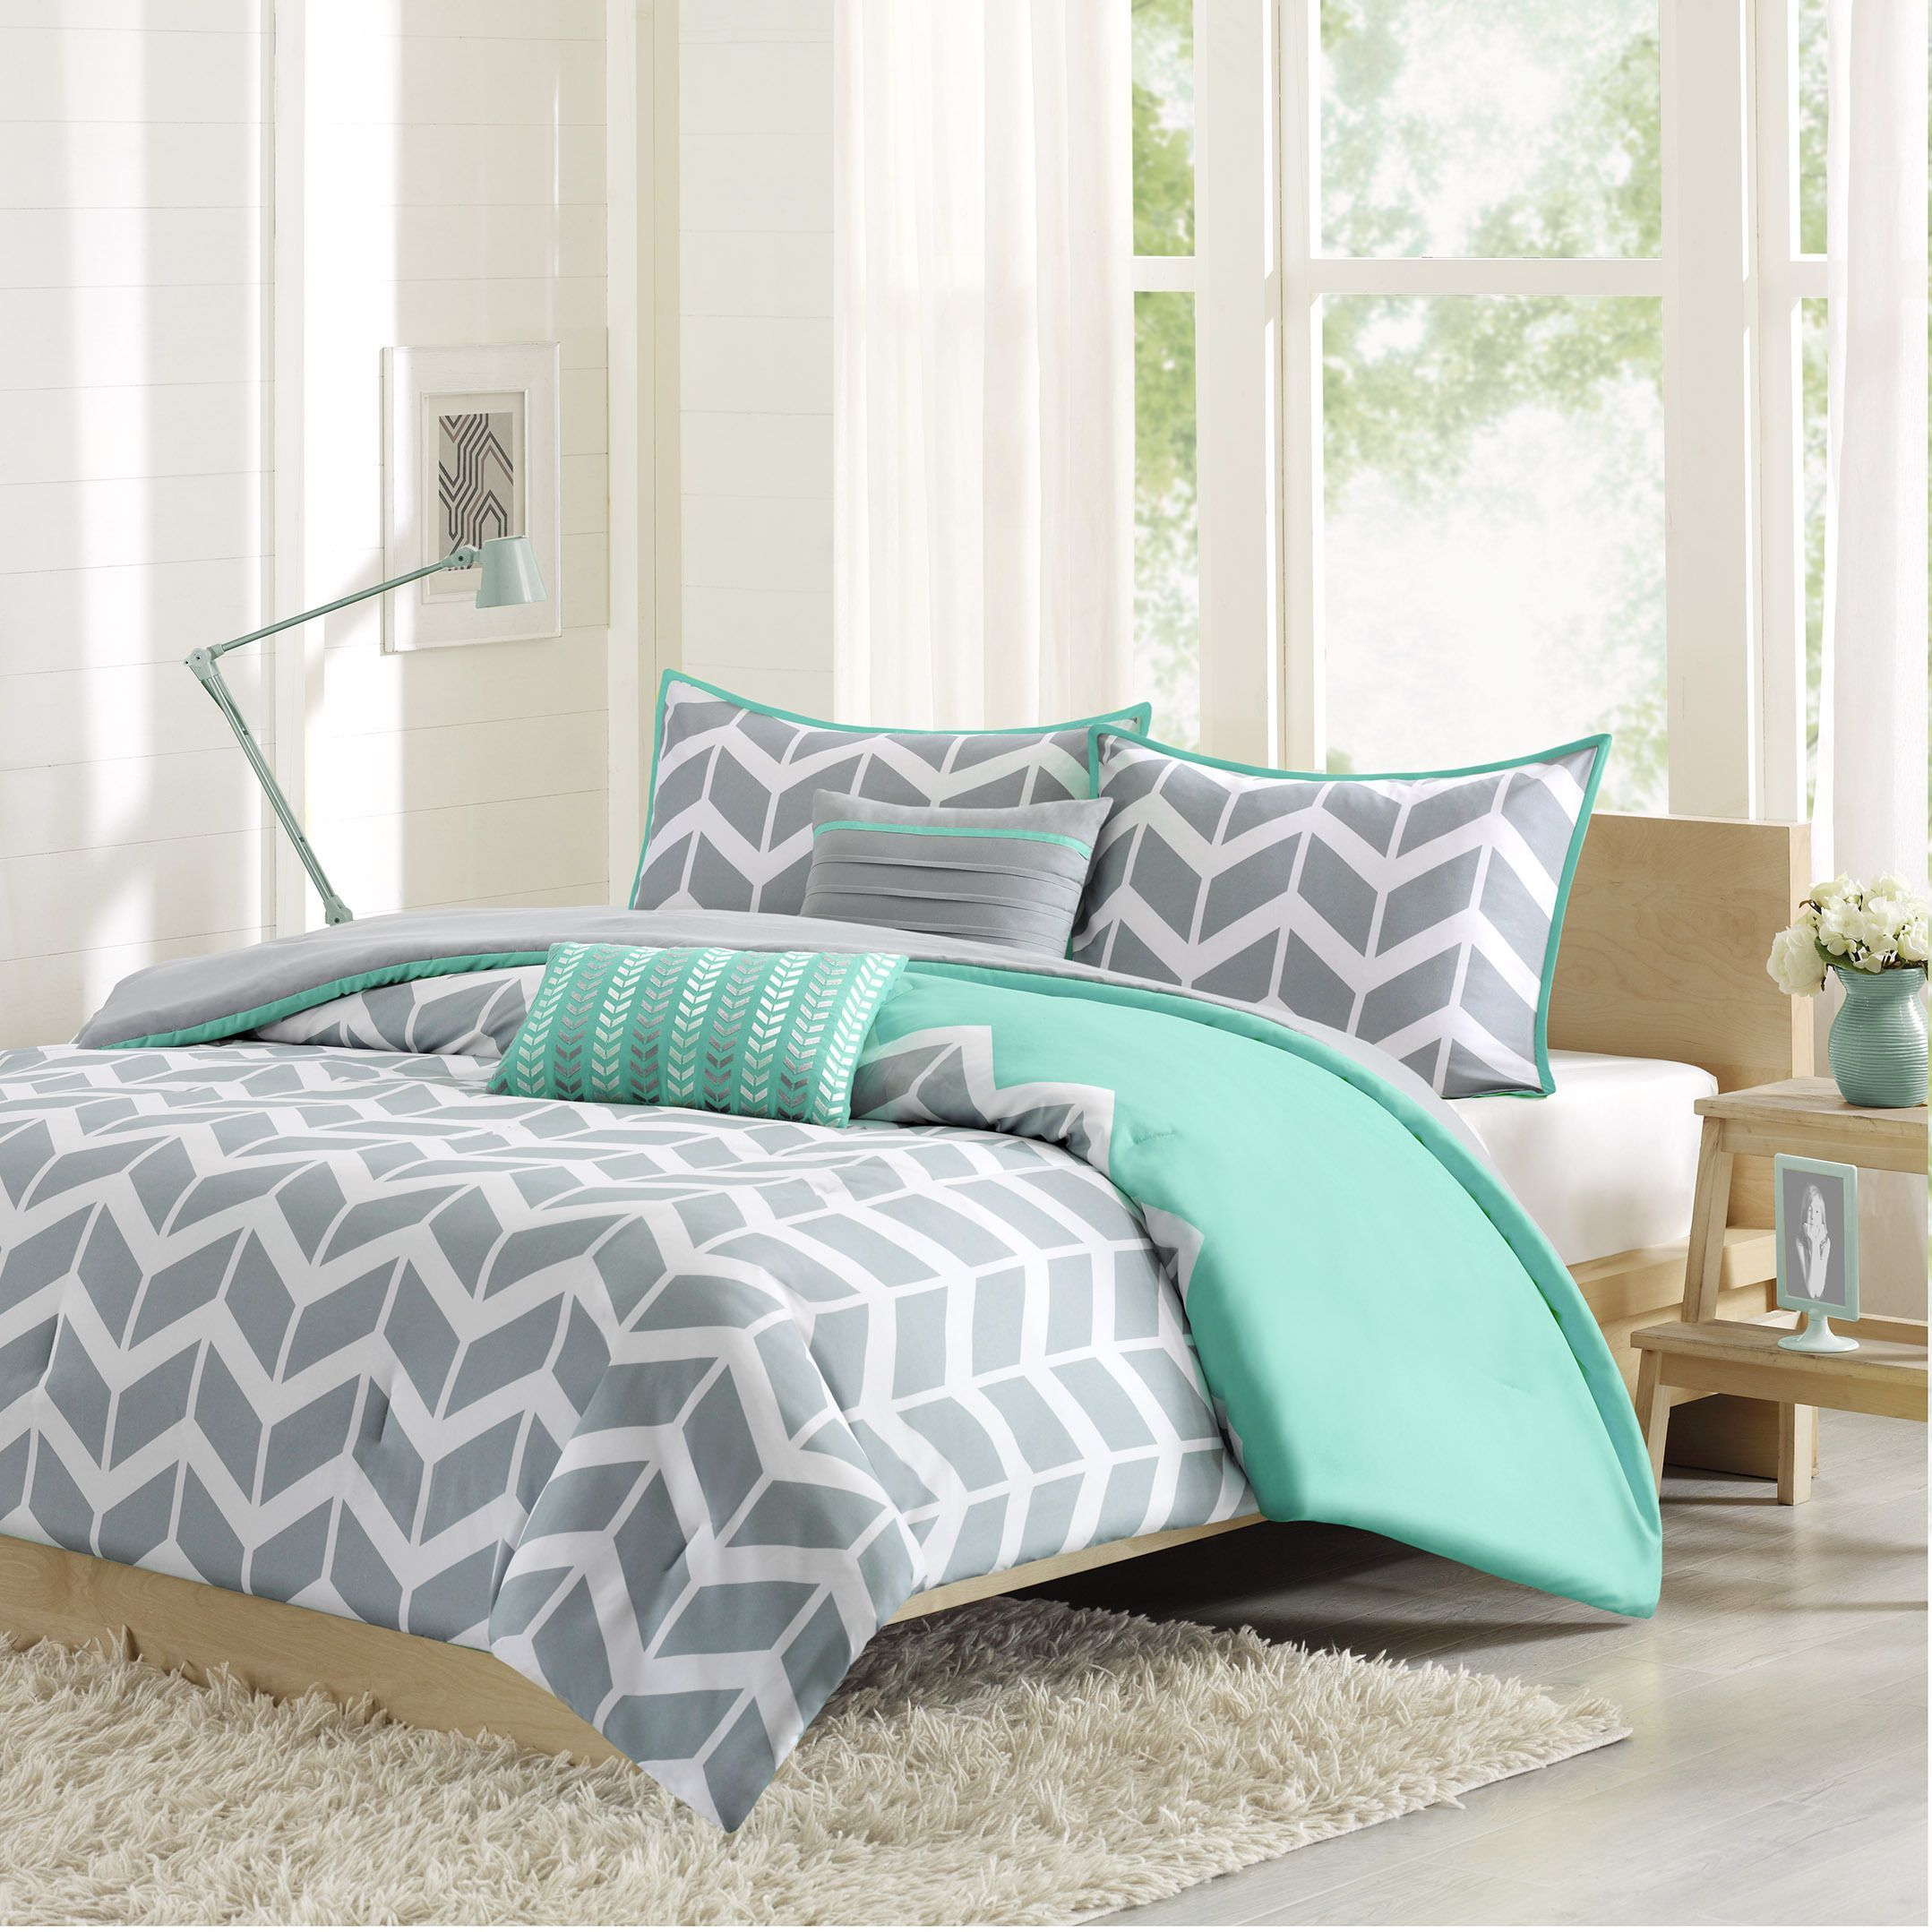 yellow piece c comforters color theme green ombre multi blue full comforter queen beautiful bedding tie sets teal set